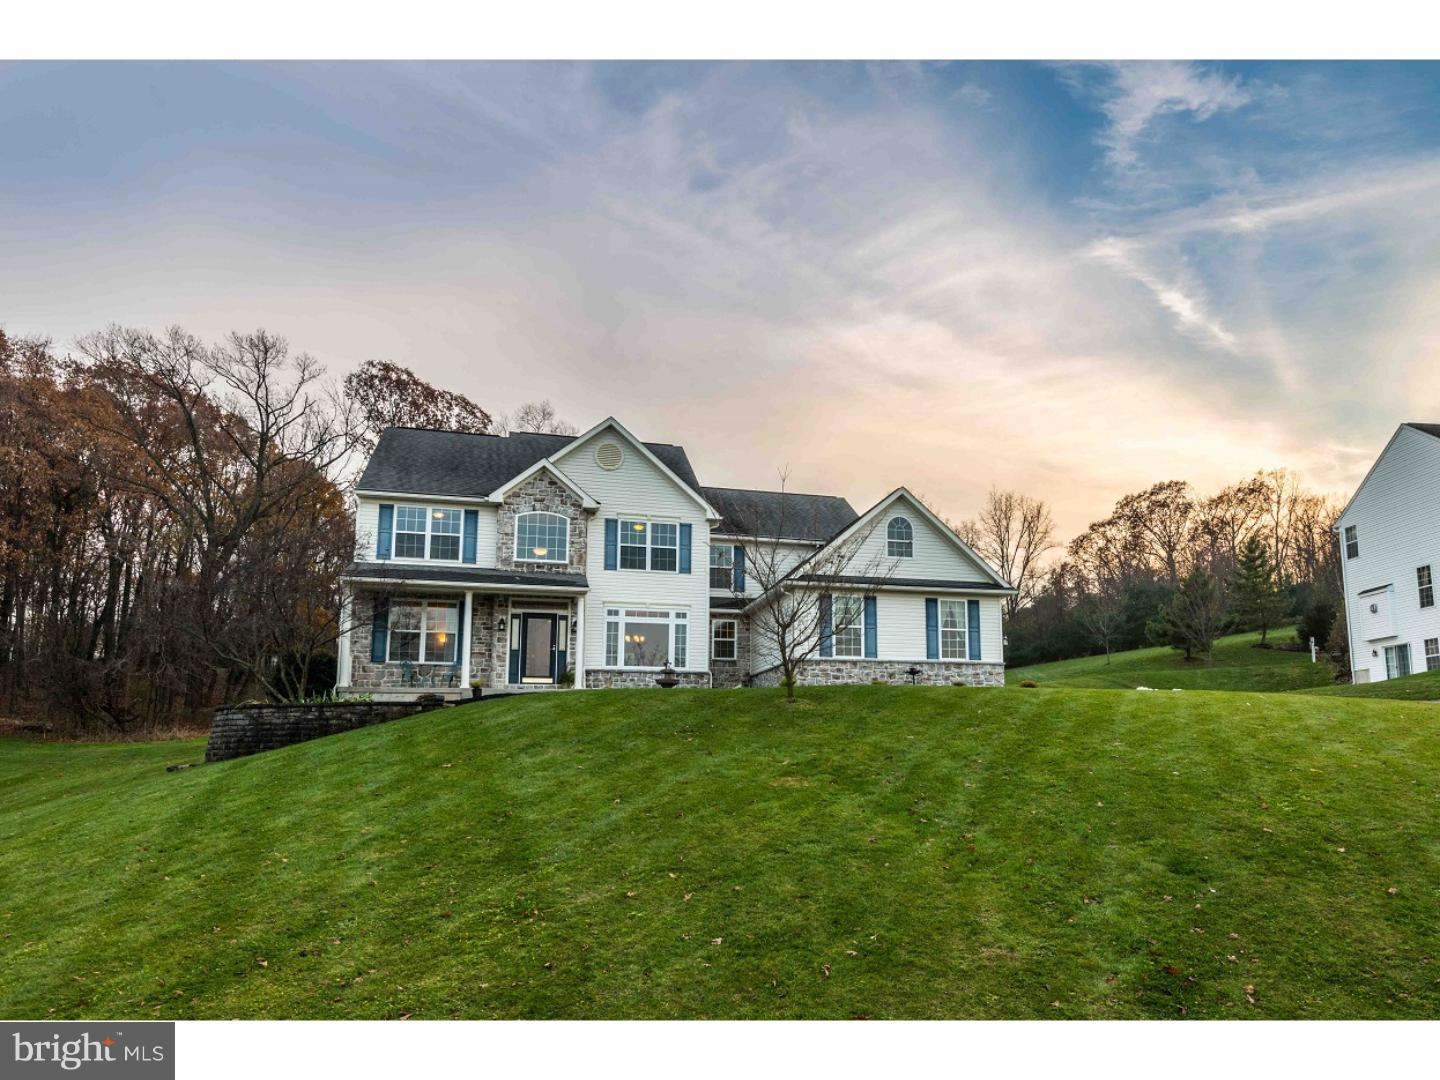 337 EAGLEVIEW DRIVE, MOHRSVILLE, PA 19541